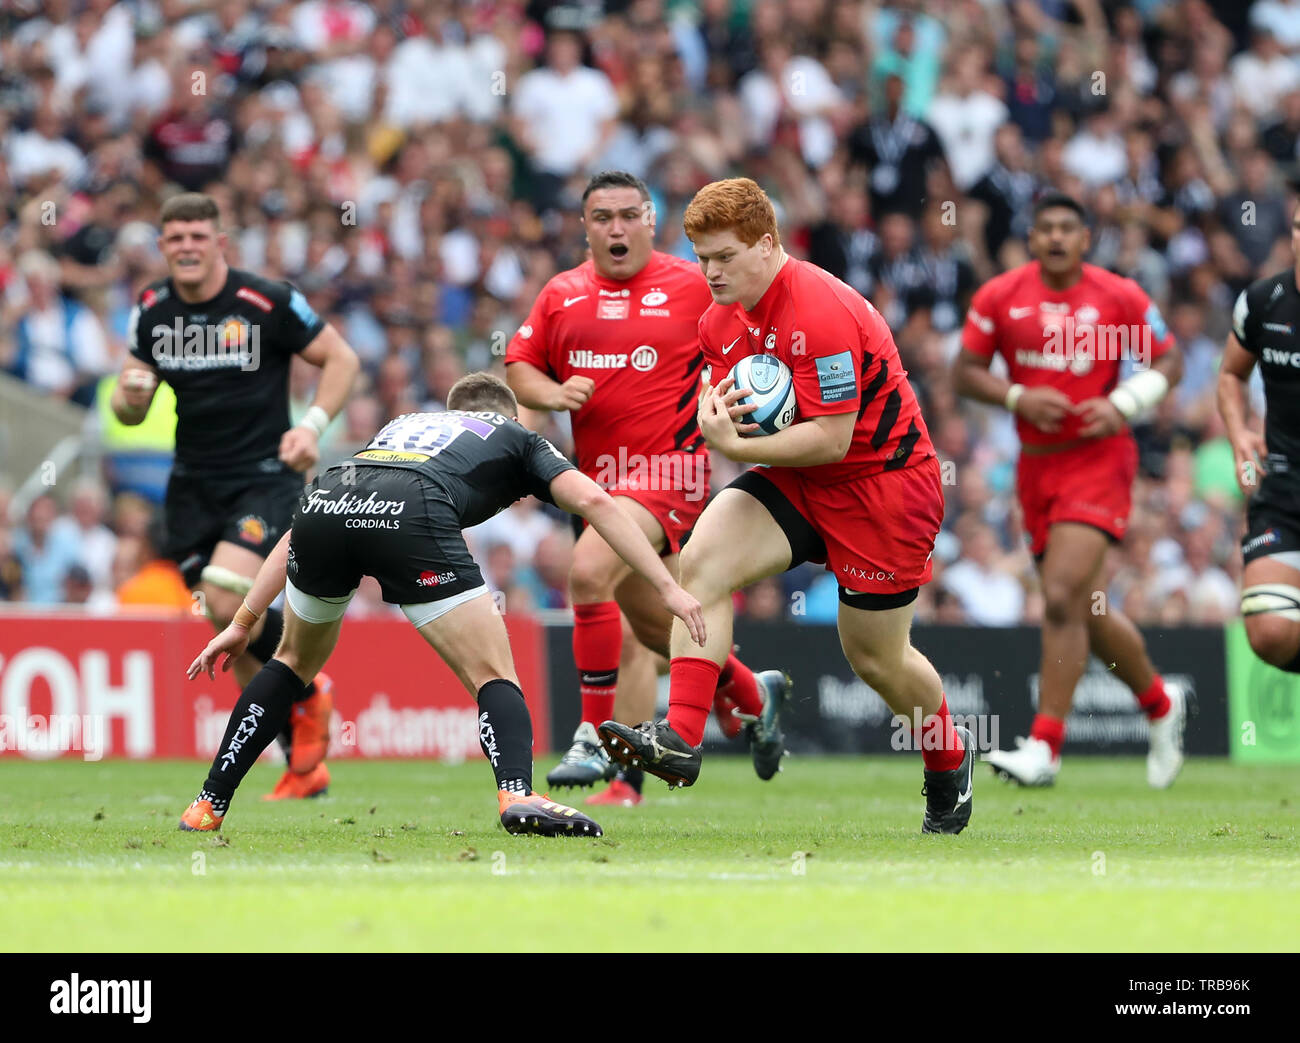 01.06.2019 Twickenham, England. Ralph Adams-Hale on the charge for Saracens during the Premiership Final 2019 game between Exeter Rugby and Saracens rfc.   © Phil Hutchinson/Alamy Stock Photo